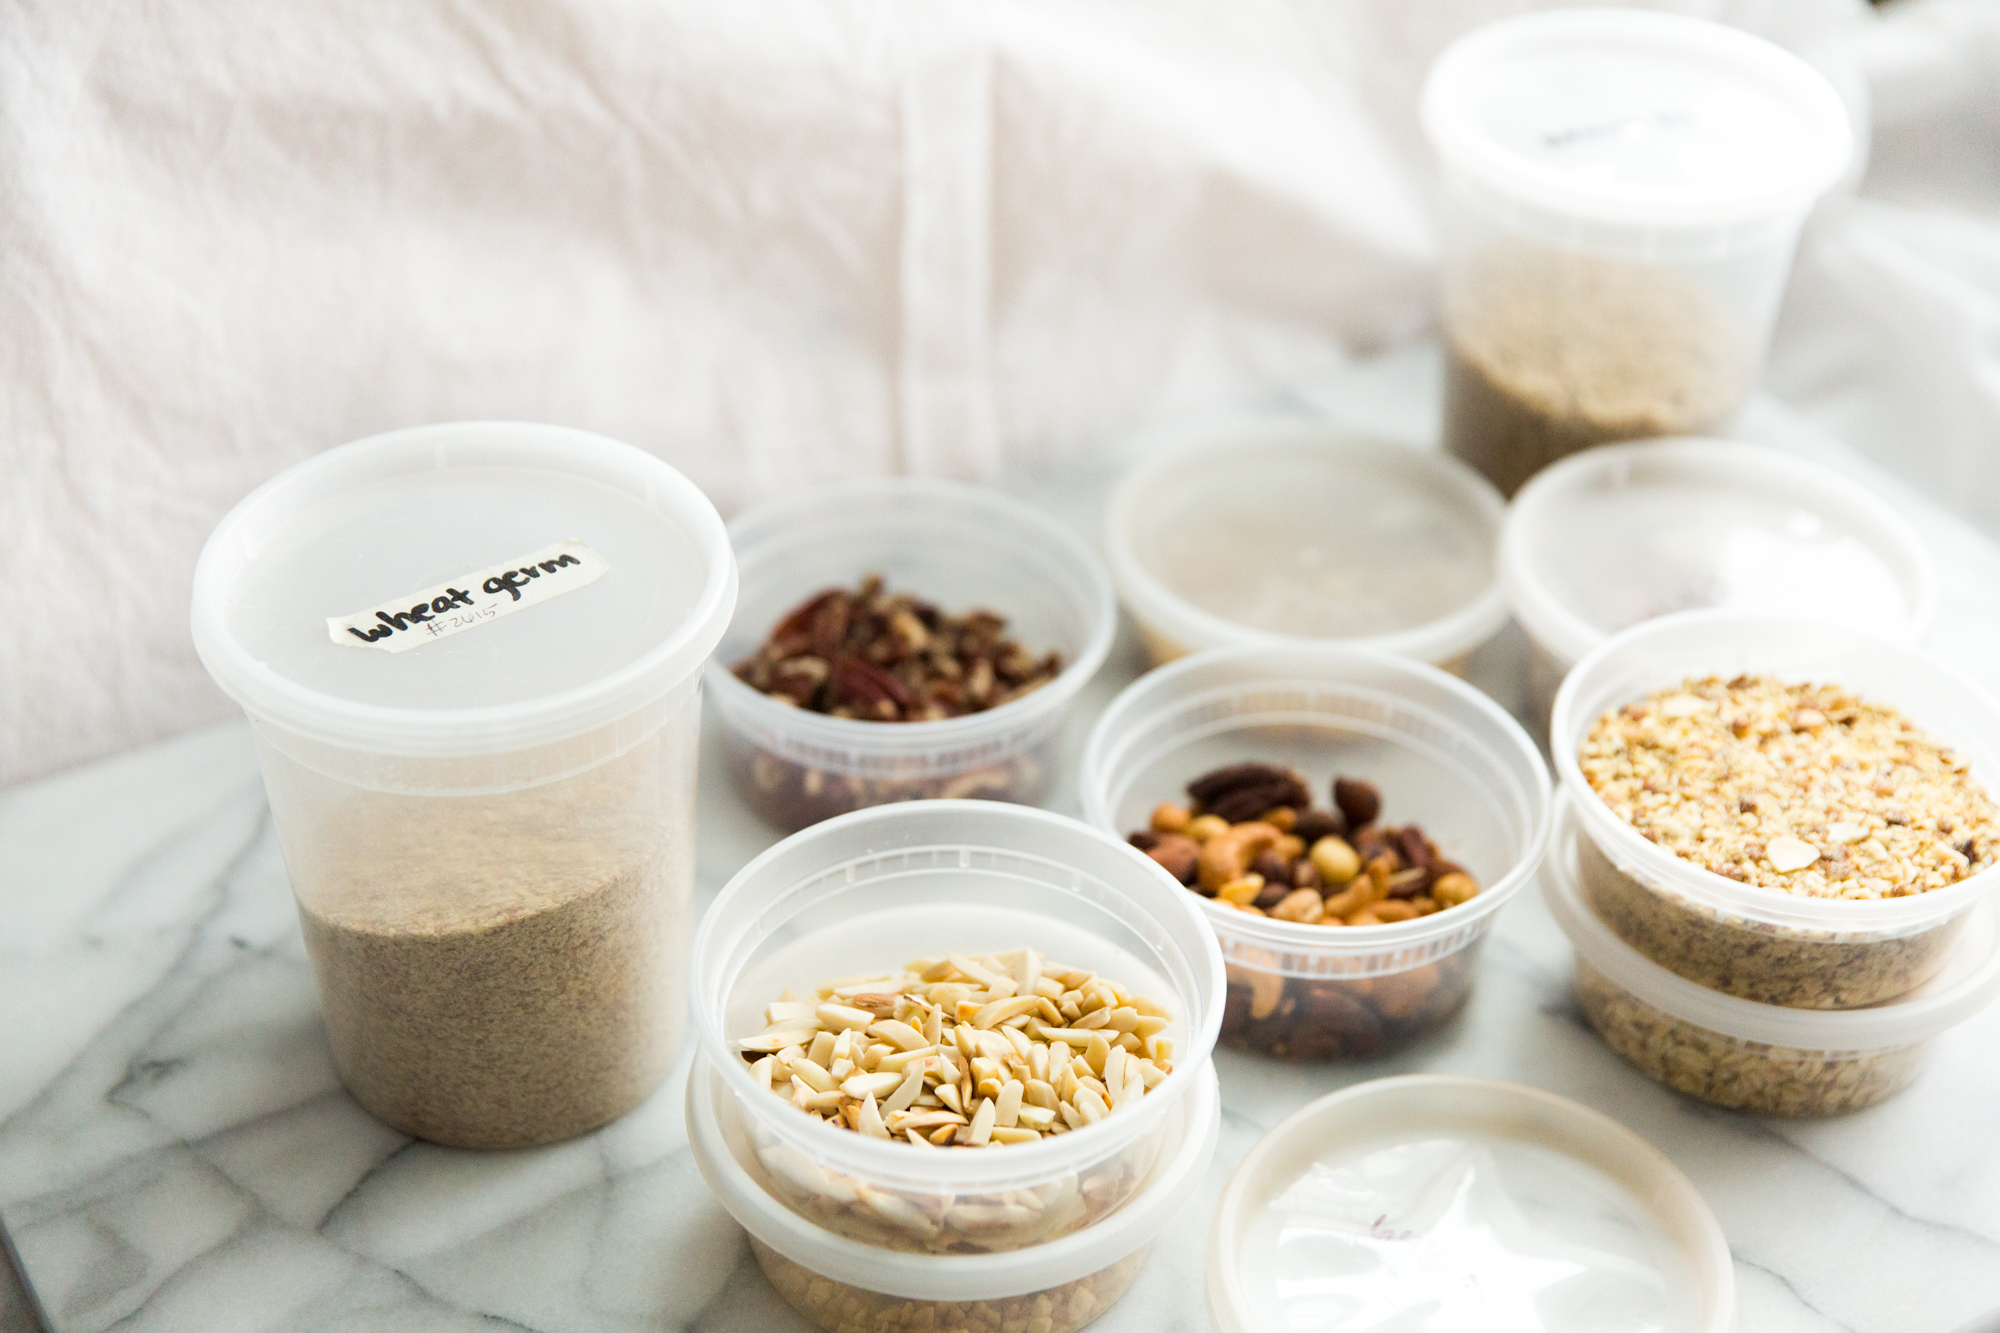 The Best Way ToGrocery Shop - How to Use Your Own Containers For Bulk Shopping